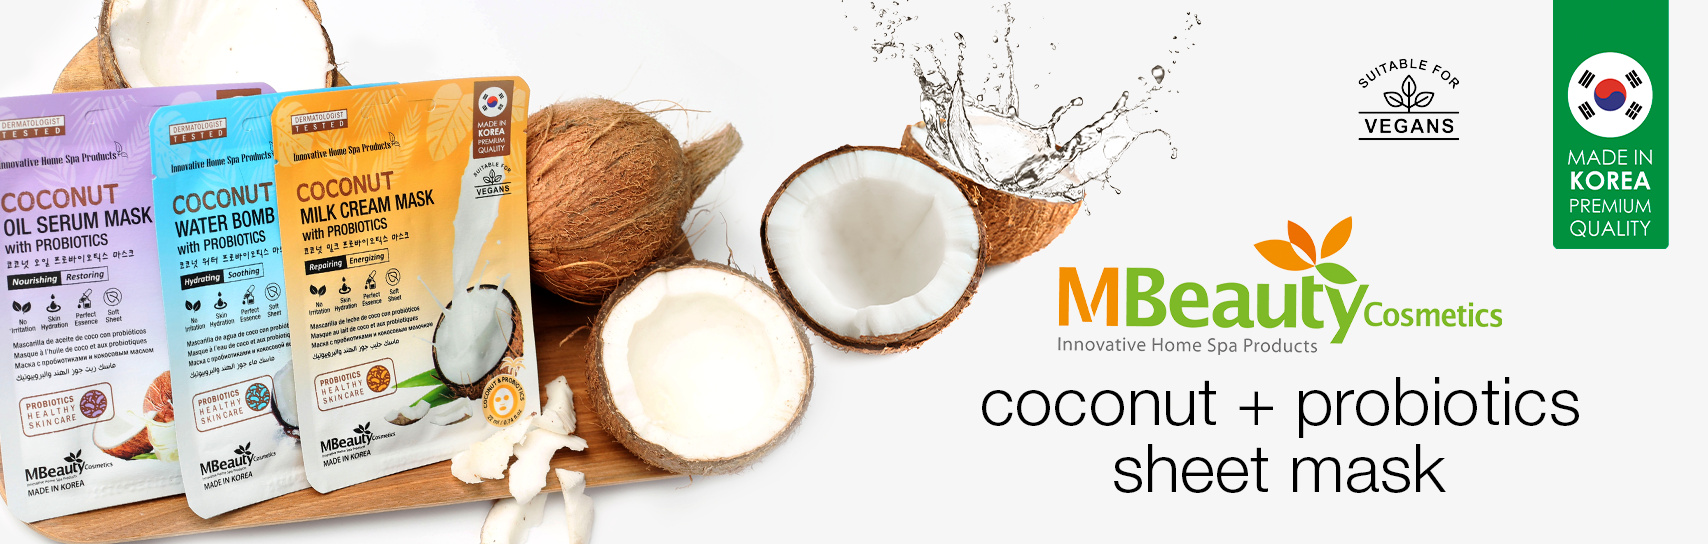 [MBeauty - coconut masks - products]